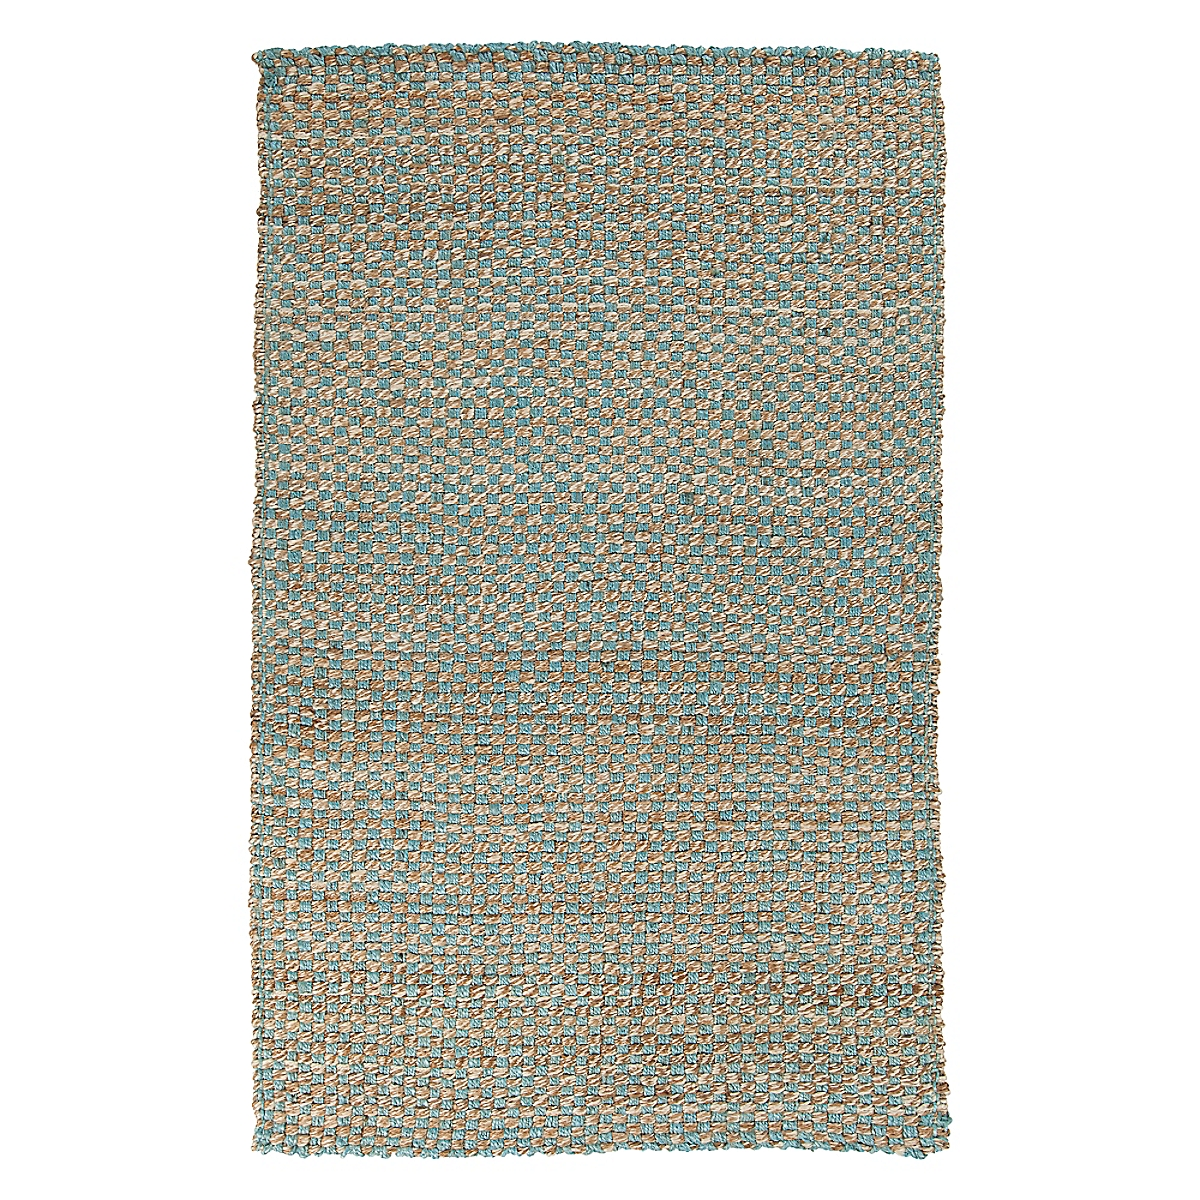 Basketweave Jute Rug - Blue